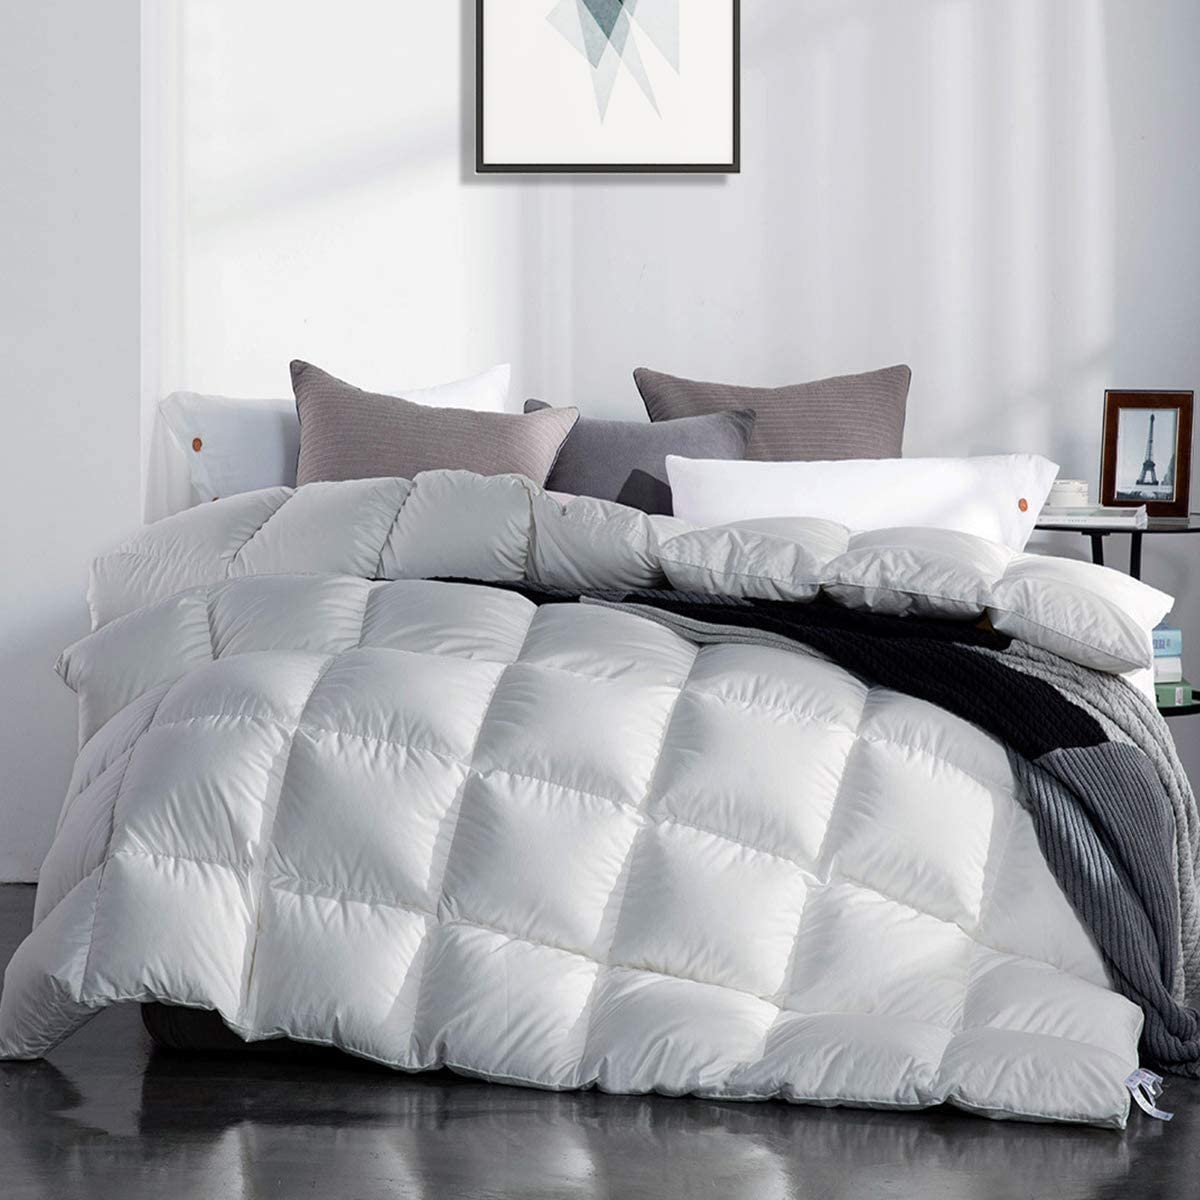 SNOWMAN White Goose Down Comforter Full/Queen Size 100% Cotton Shell Down Proof-Solid White Hypo-allergenic: Kitchen & Dining